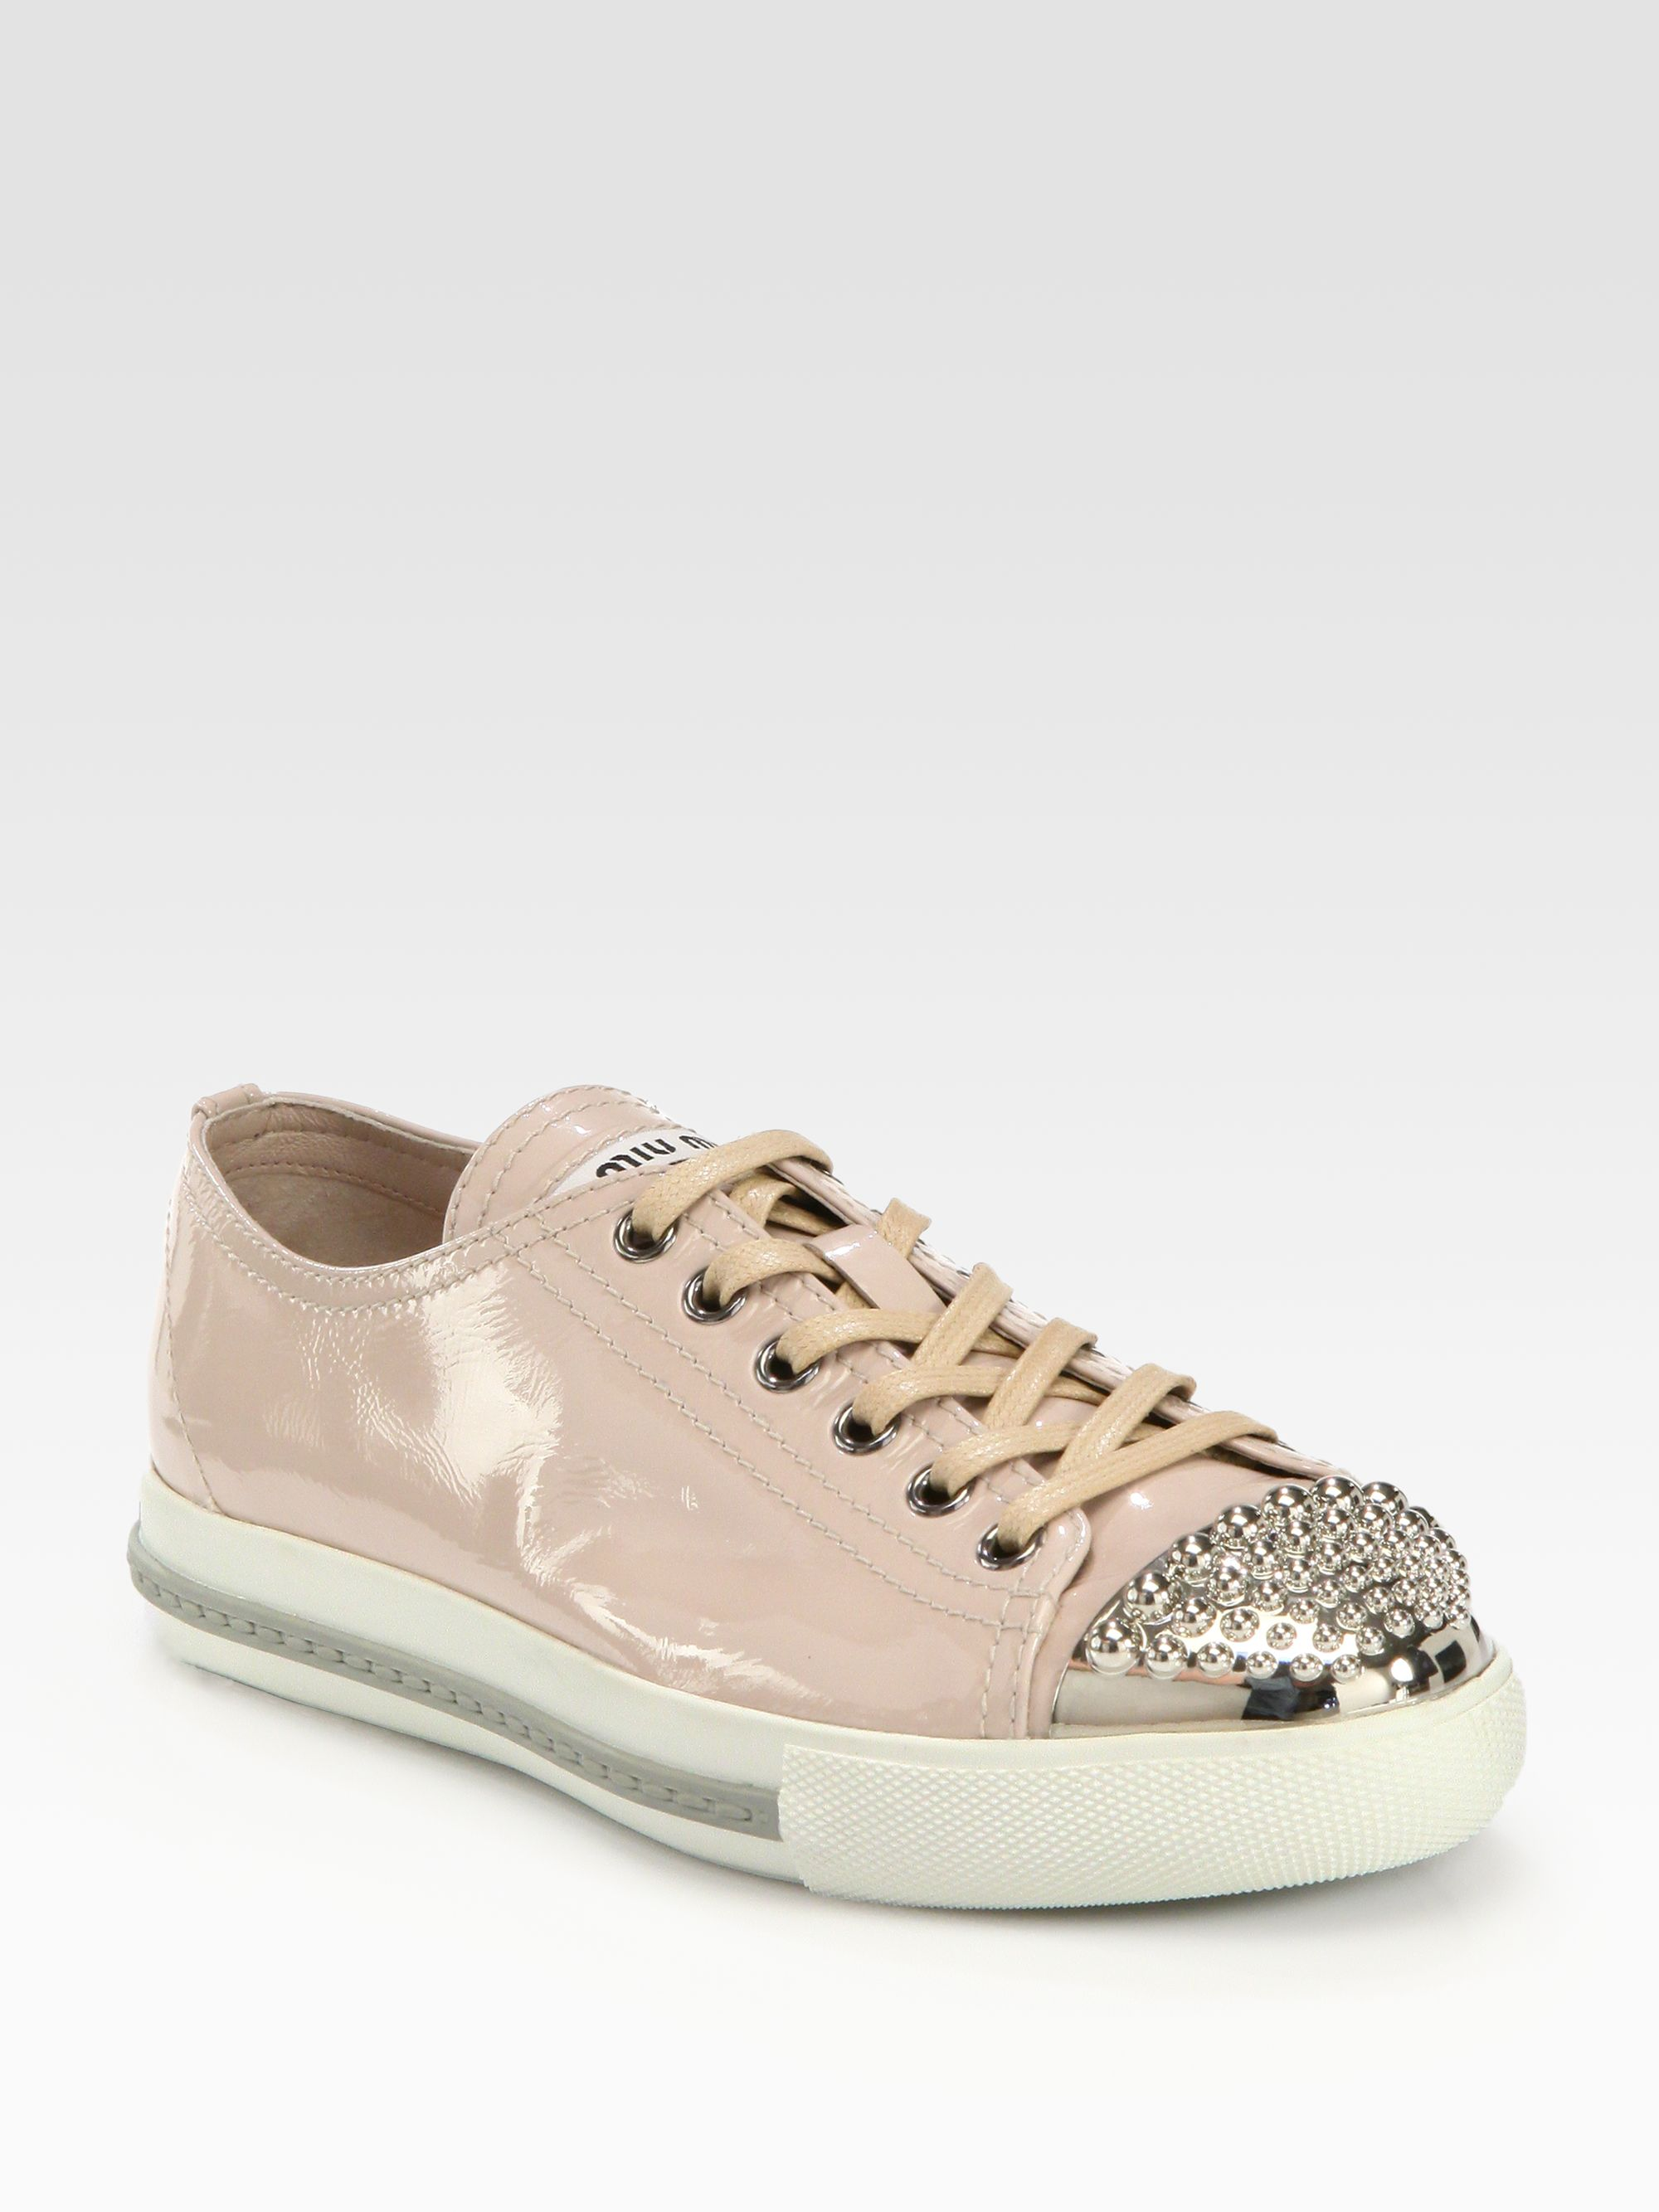 miu miu studded patent leather laceup sneakers in pink lyst. Black Bedroom Furniture Sets. Home Design Ideas